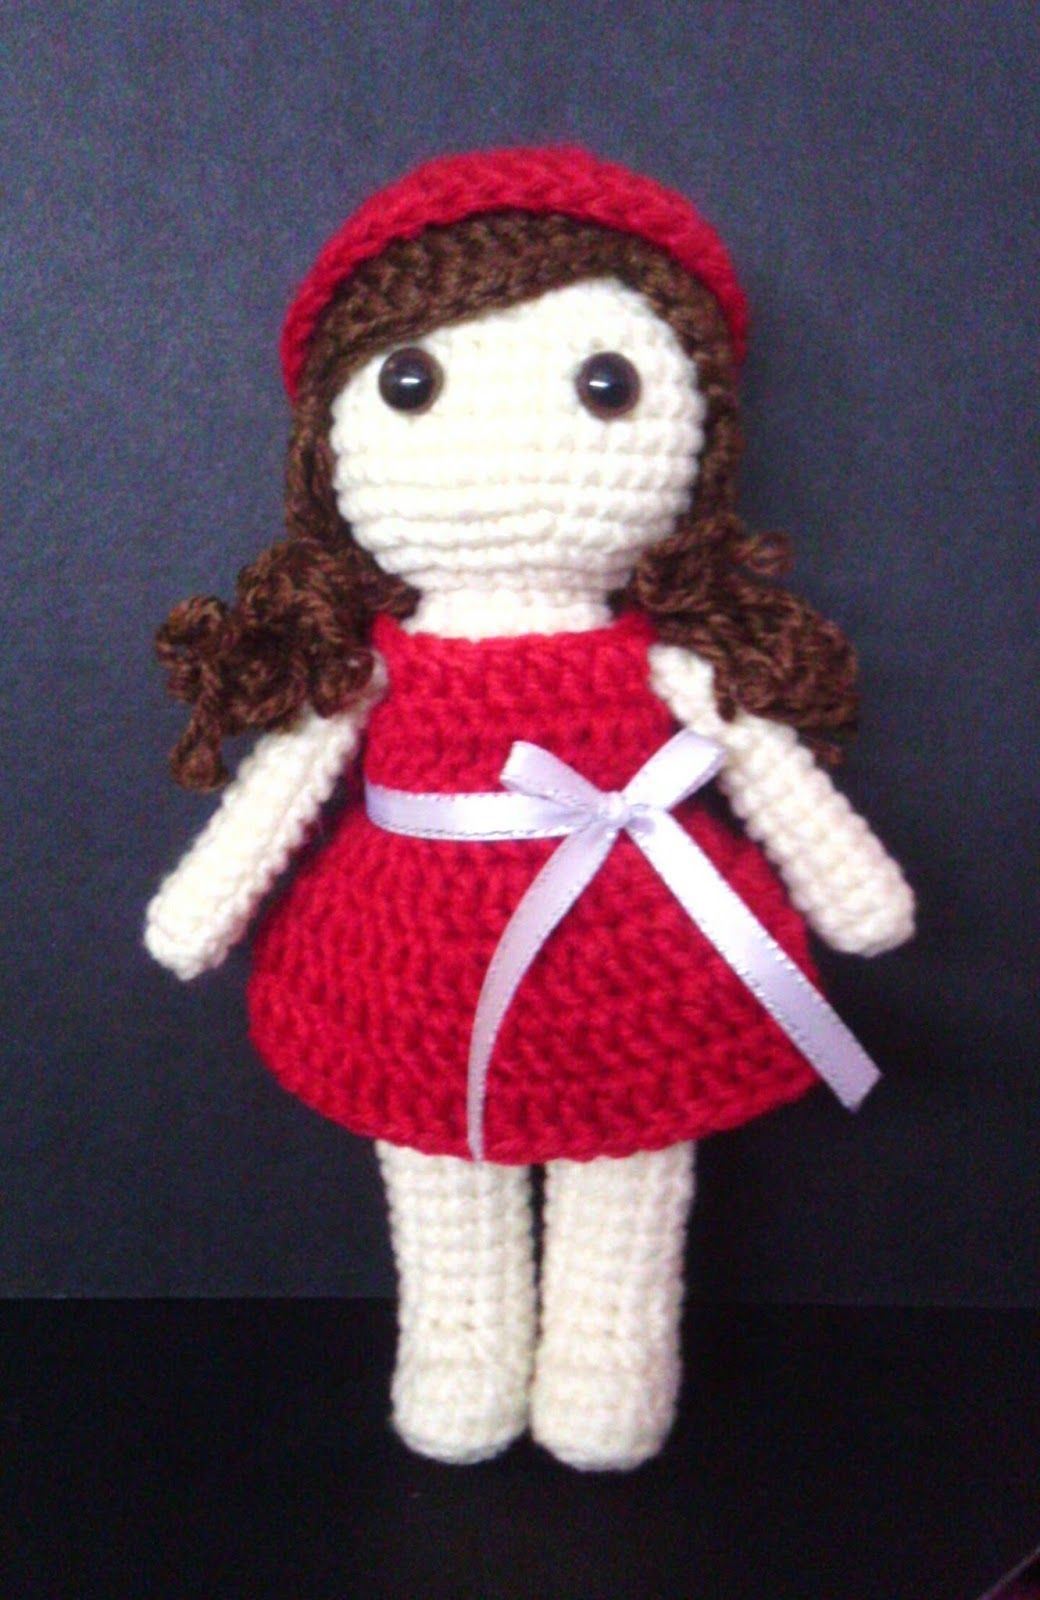 A blog about patterns for making crochet doll amigurumi crochet free online crochet patterns for doll doll clothingaccessories and other crochet related items bankloansurffo Image collections